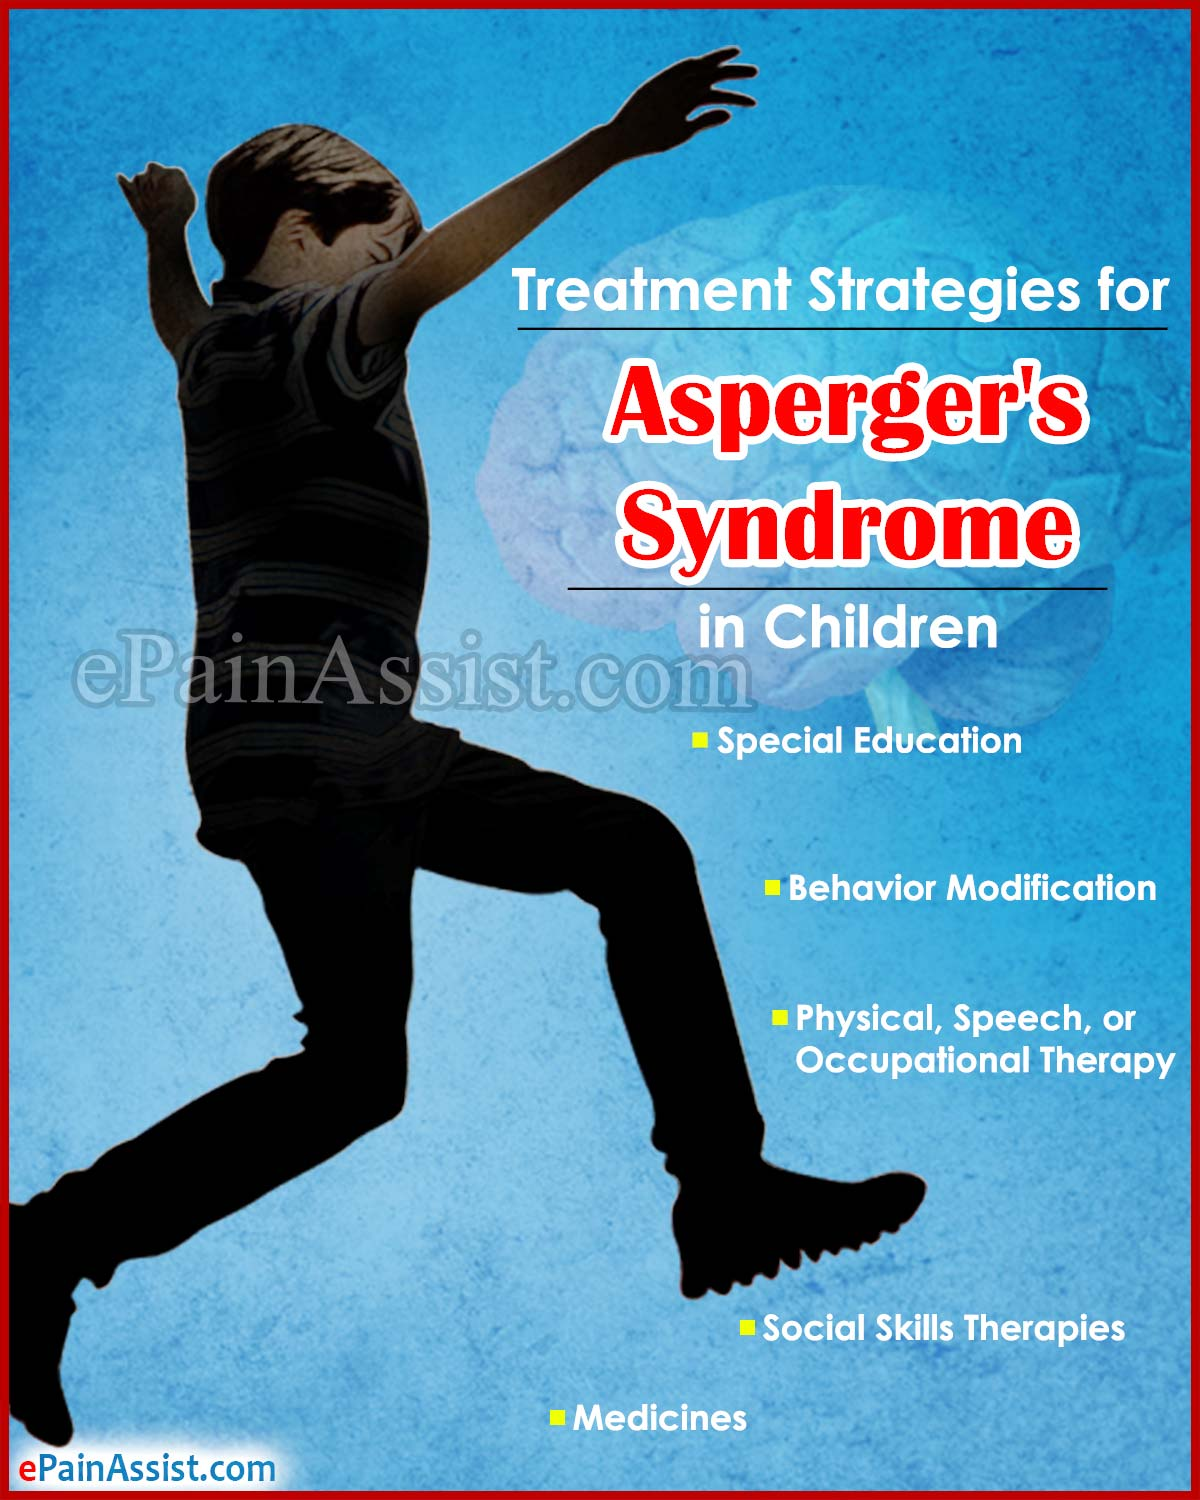 Treatment Strategies for Asperger's Syndrome in Children